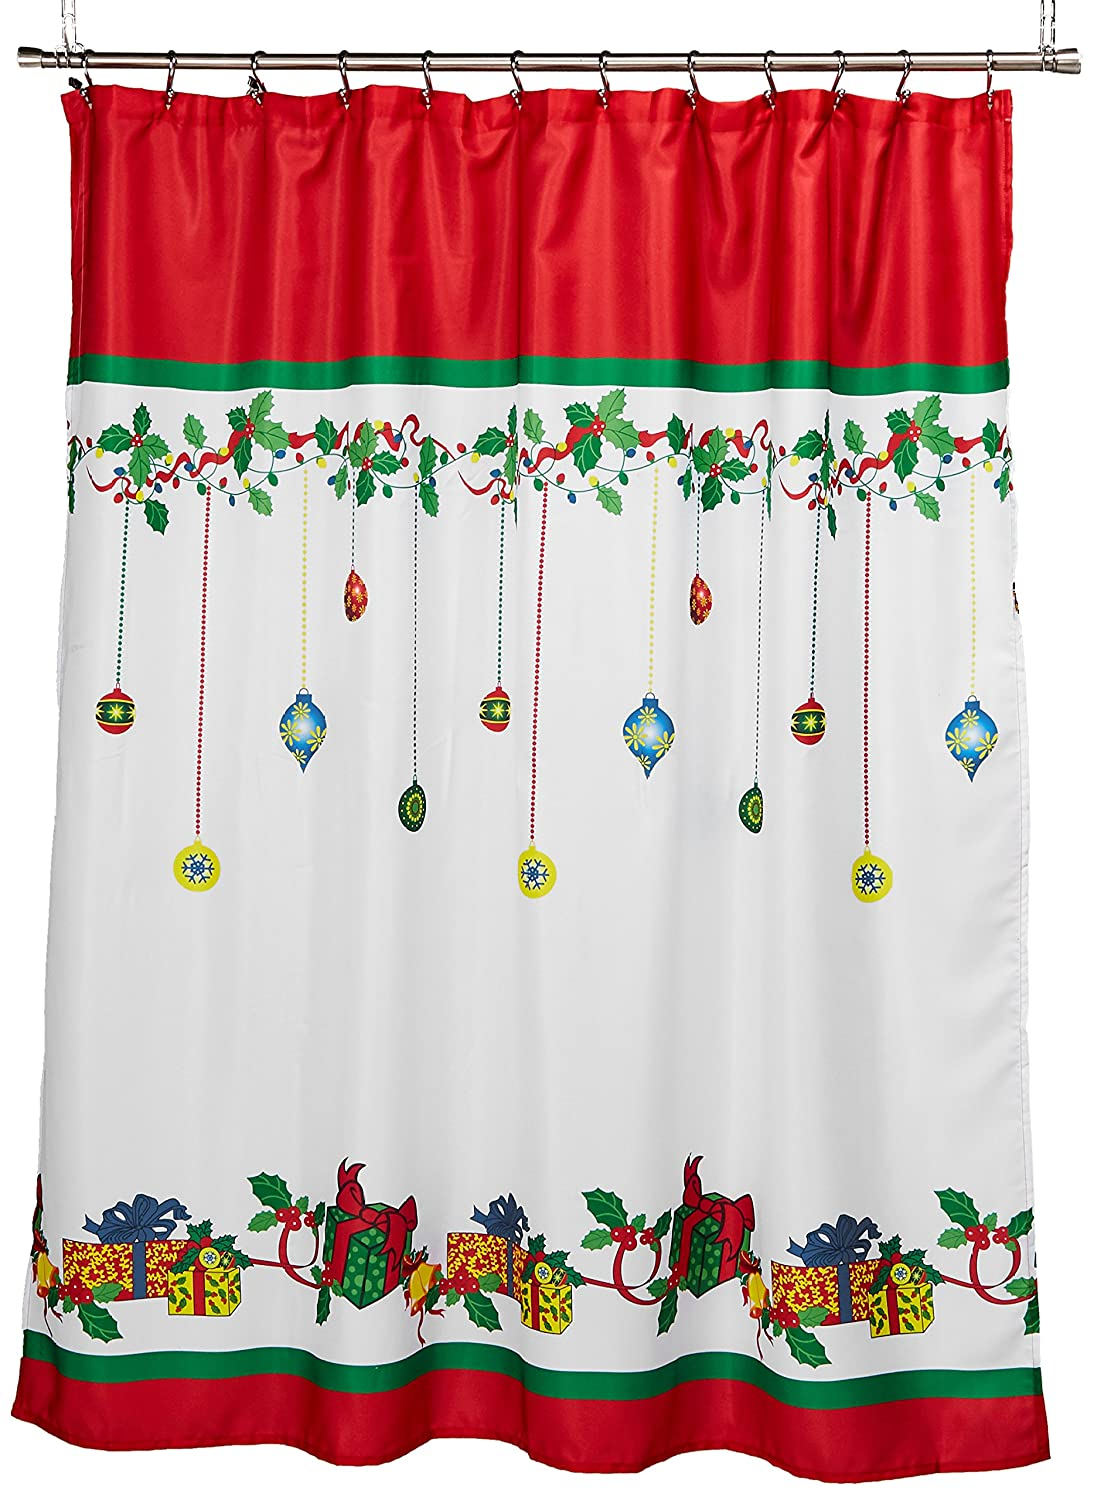 Lorraine Home Fashions Holiday Shower Curtain